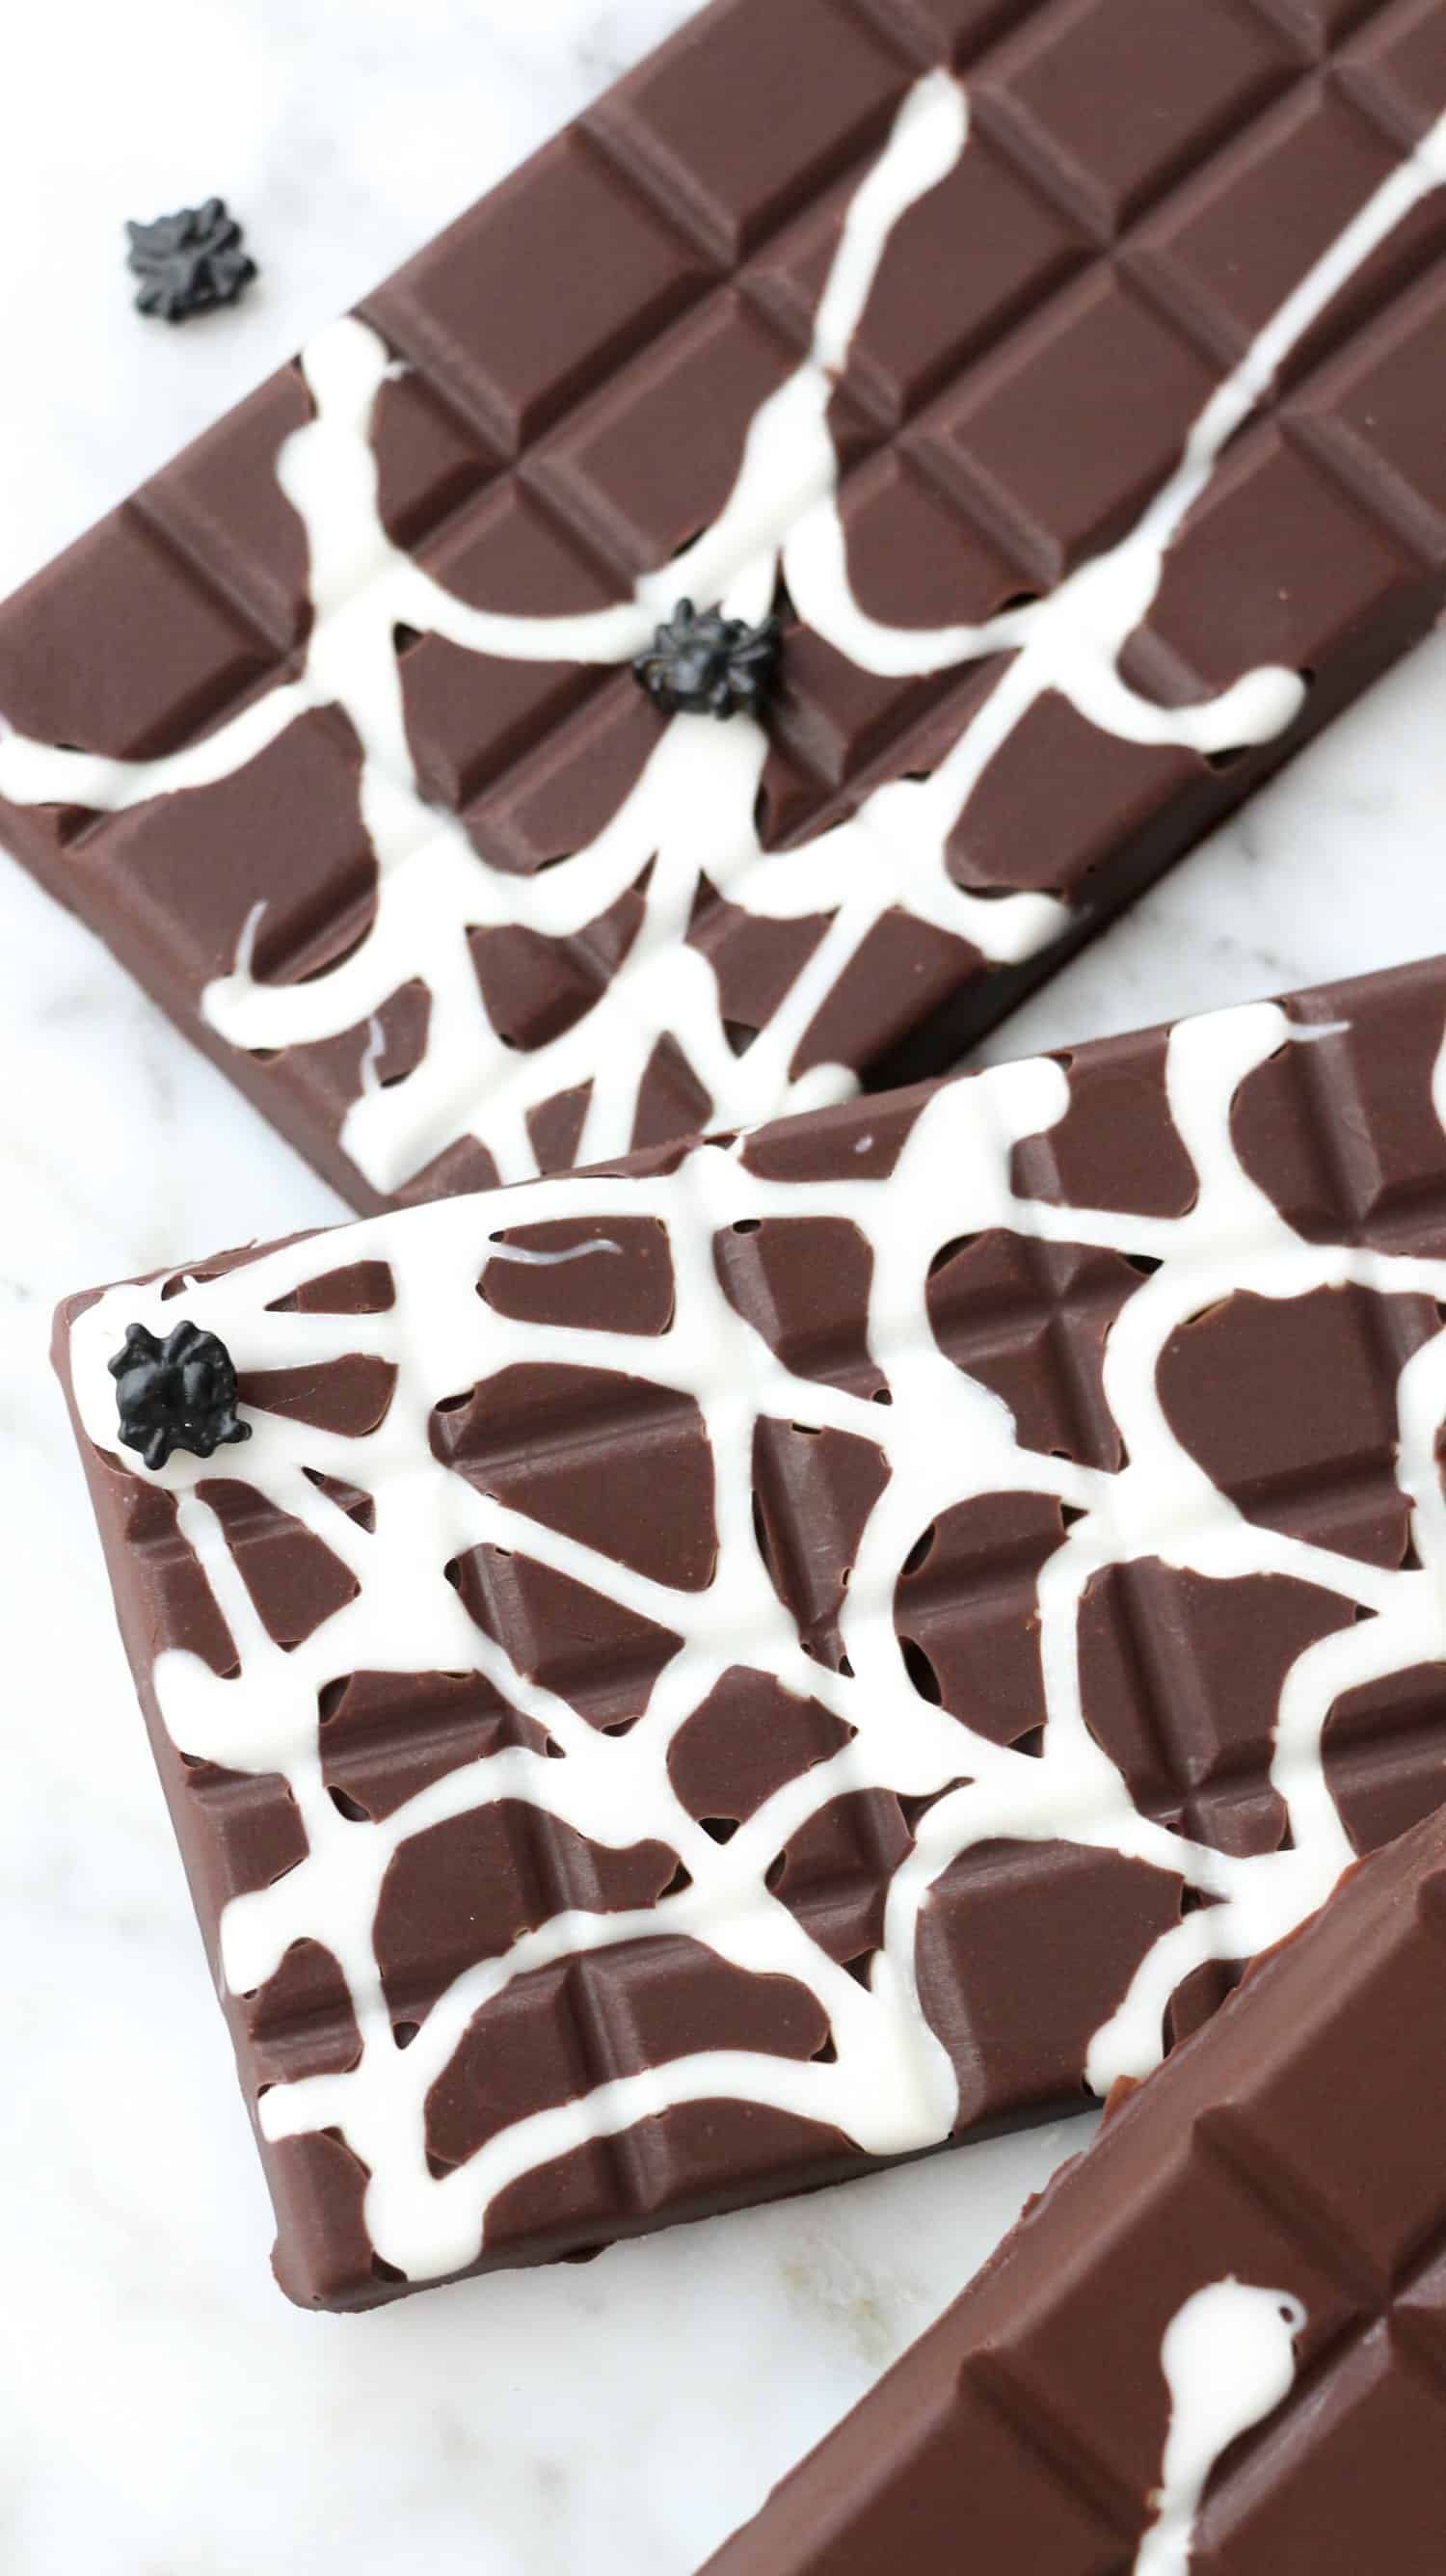 DIY-Spider-Web-Chocolate-Bars-6